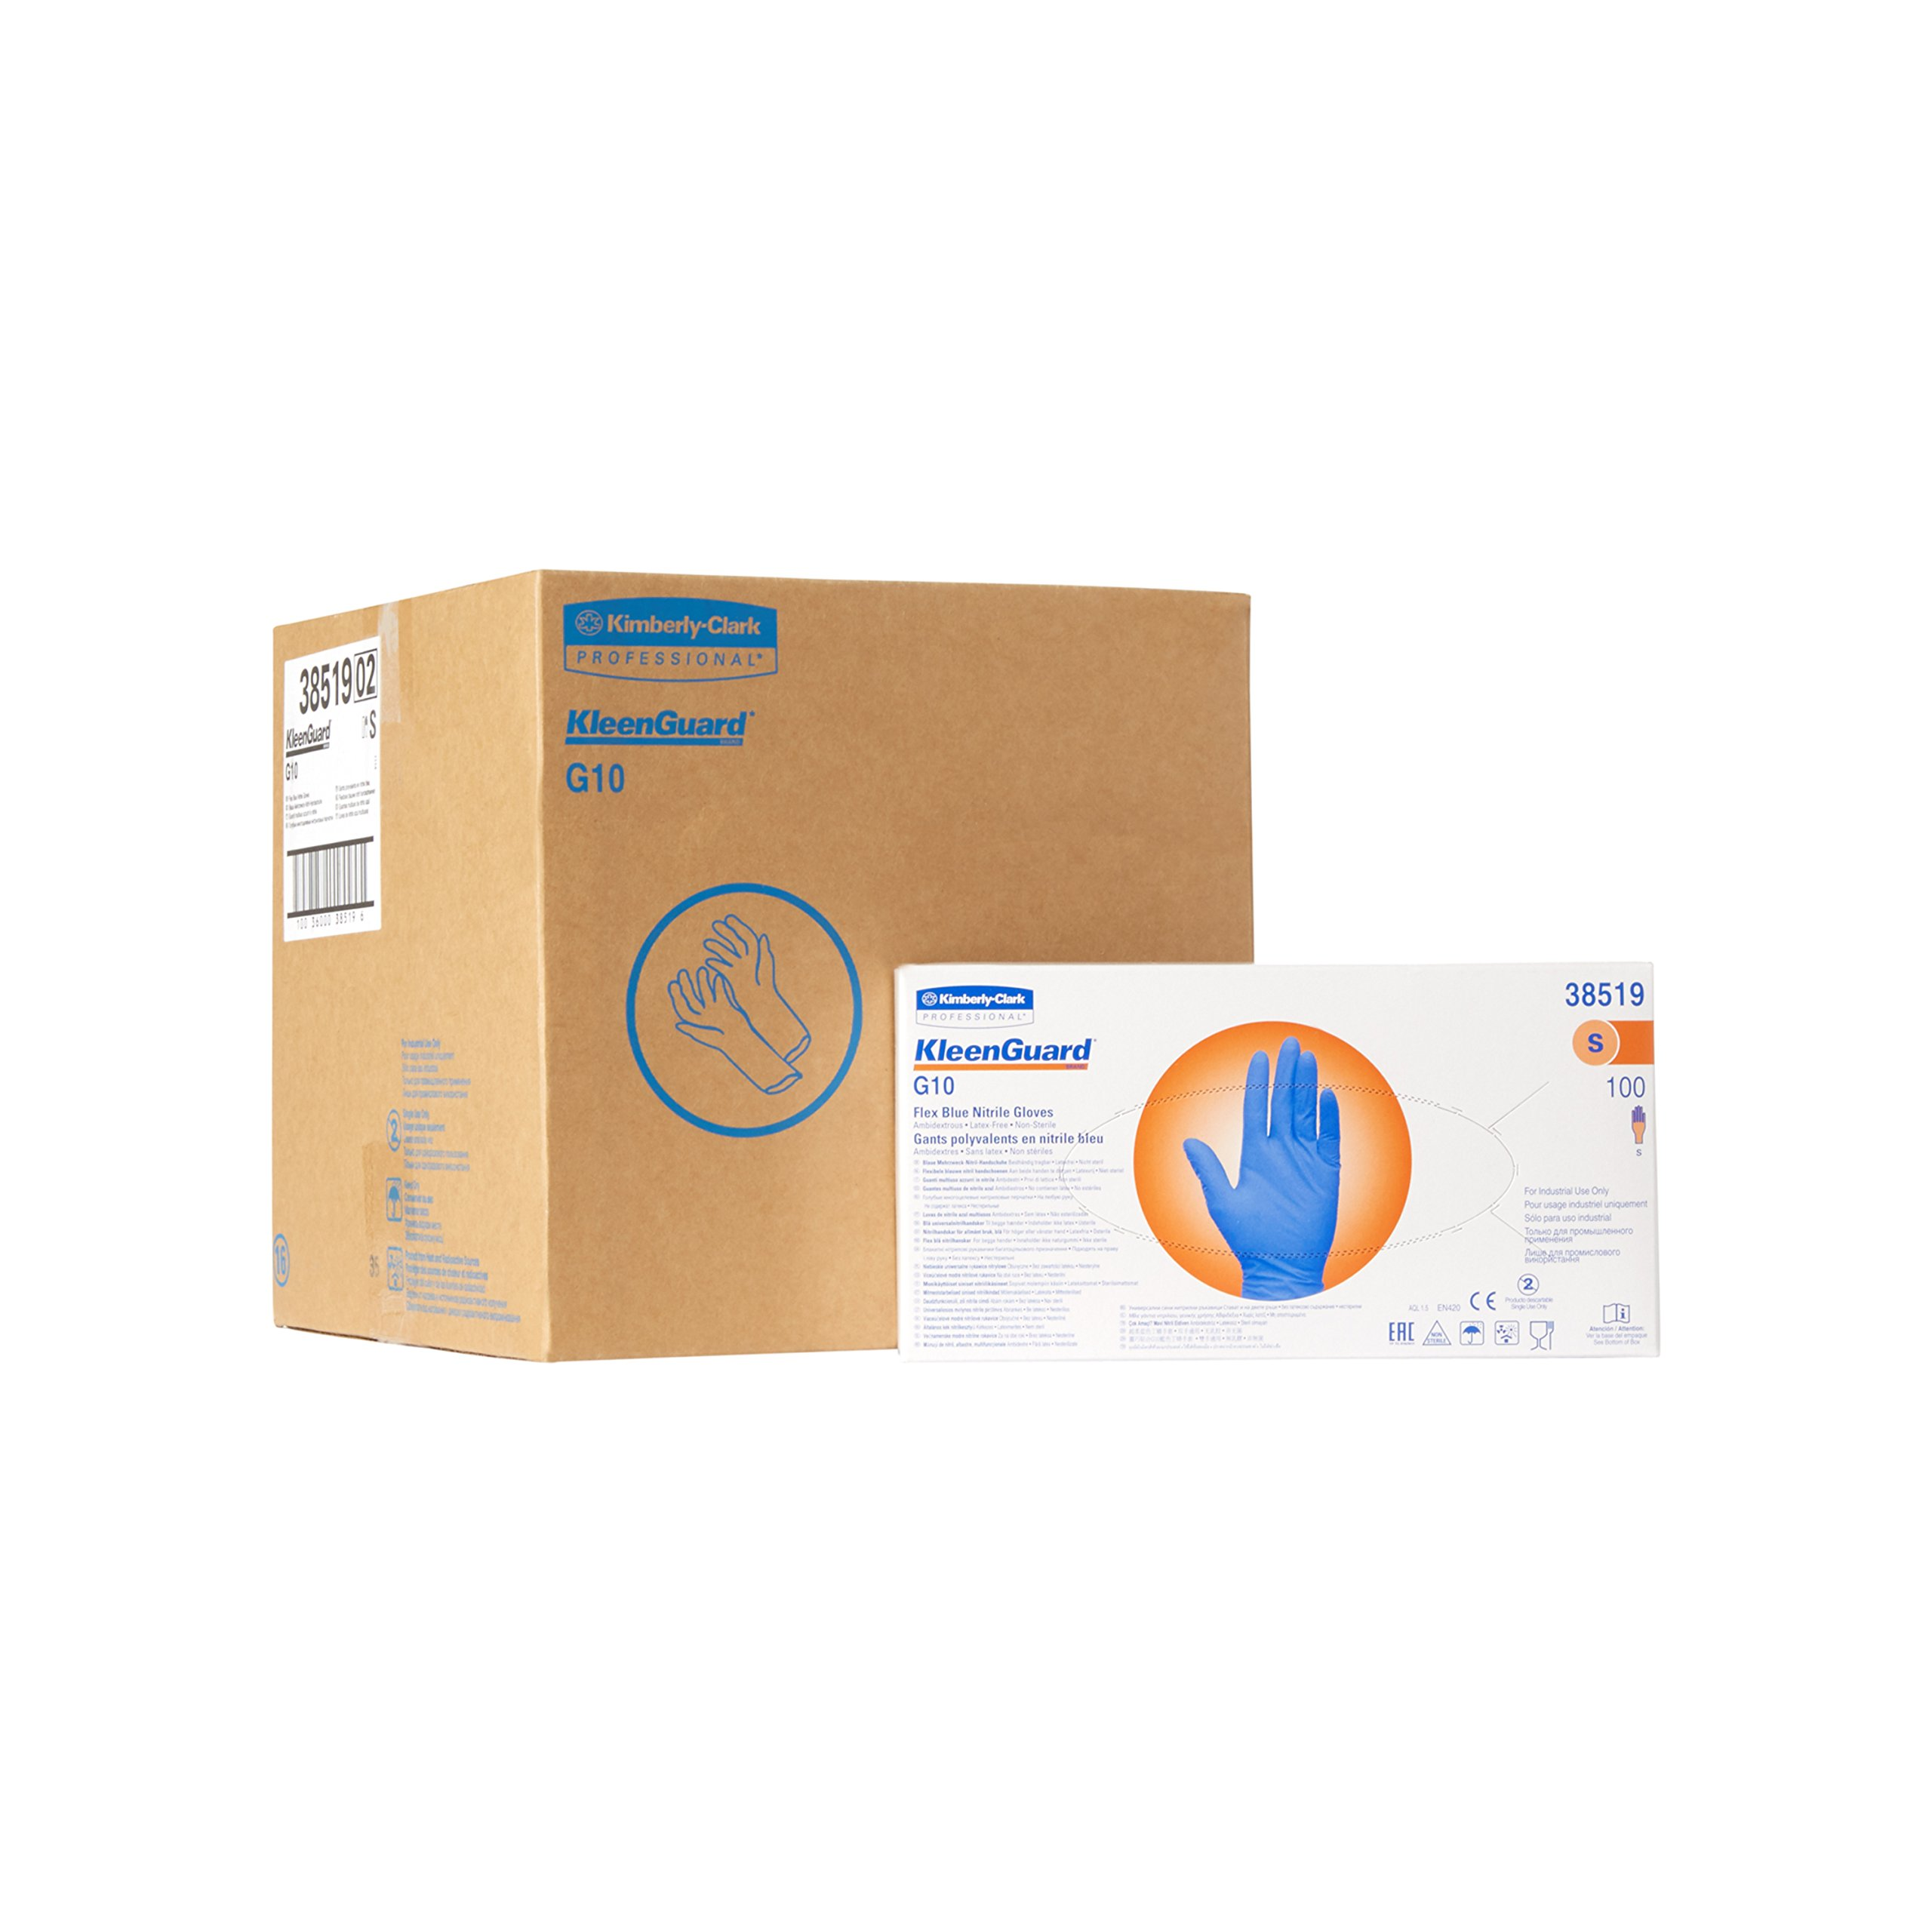 "Kleenguard G10 Flex Blue Nitrile Gloves (38520), Medium, Powder-Free, 2 Mil, 9.5"", Food Handling, Ambidextrous, Thin Mil, 100 Gloves/Box, 10 Boxes/Case, 1,000 / Case"